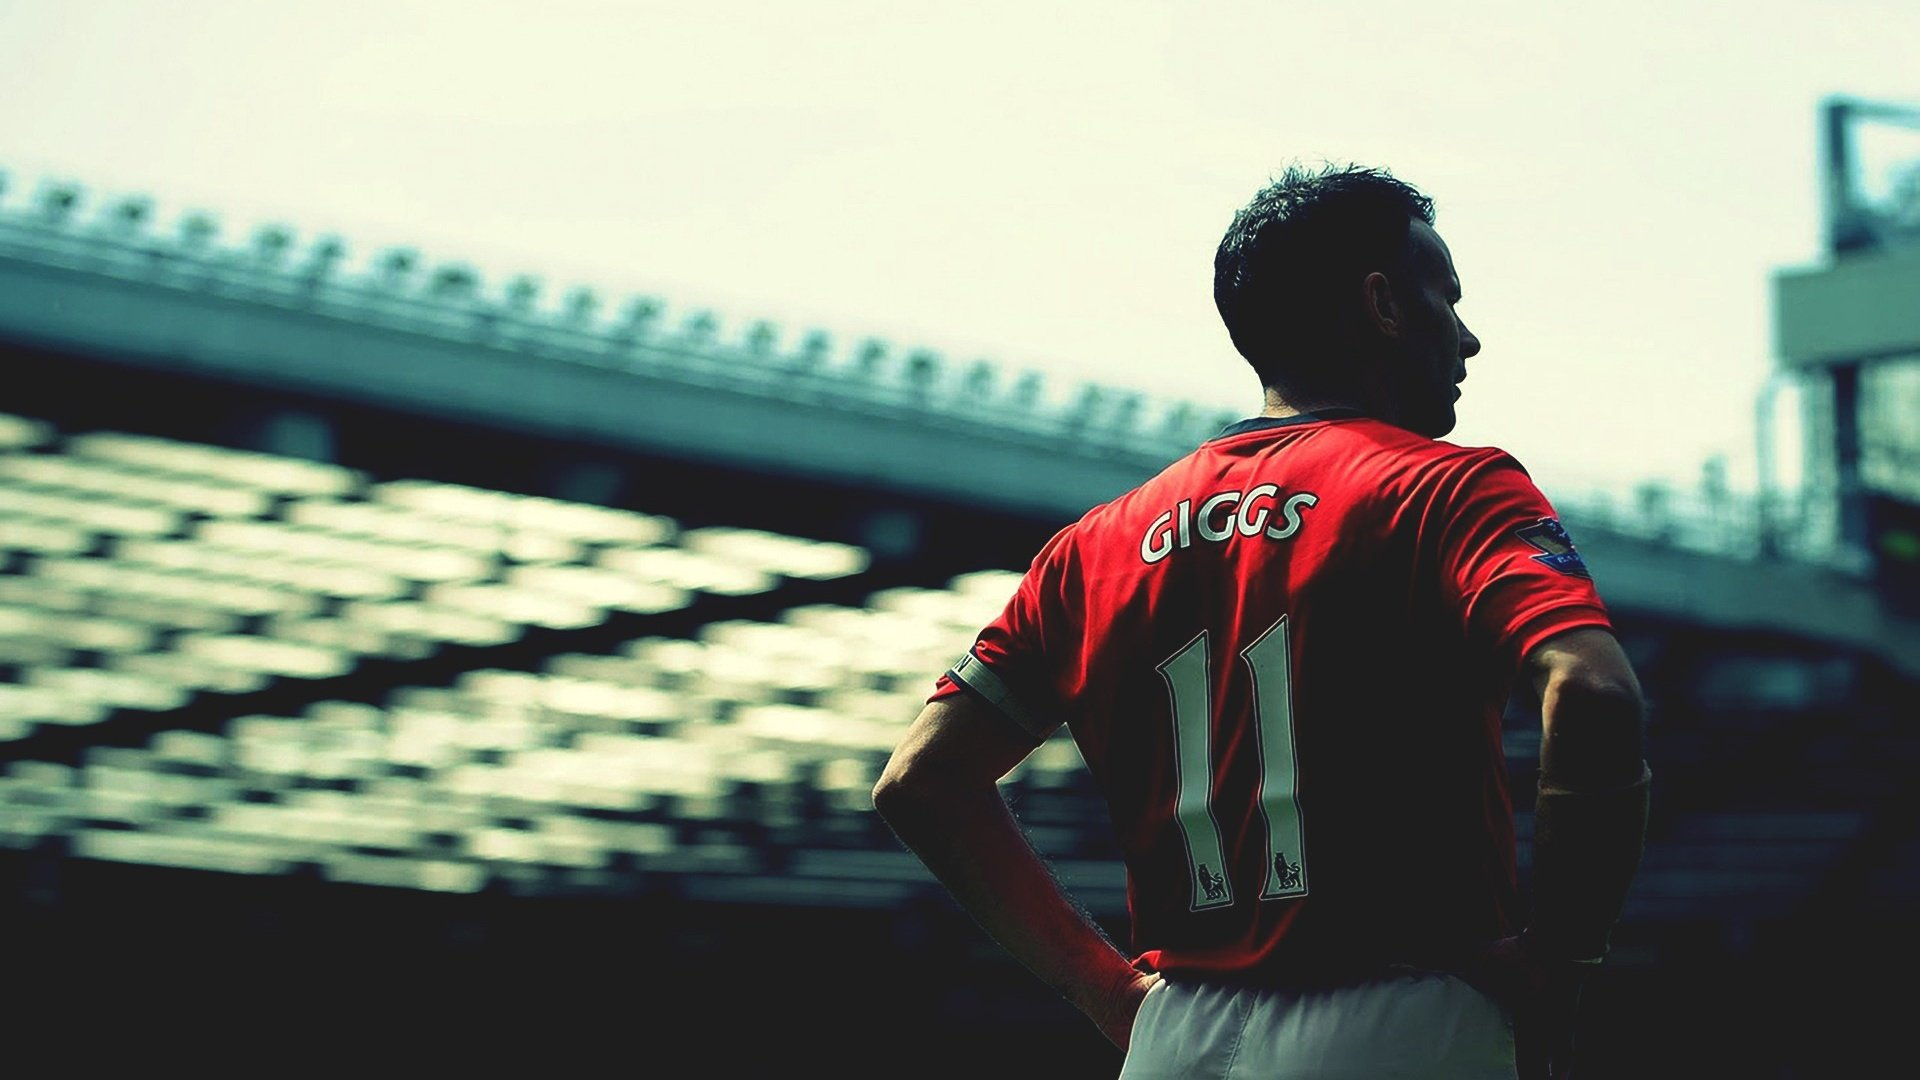 Manchester United Wallpaper Manchester United Wallpaper Hd For Laptop